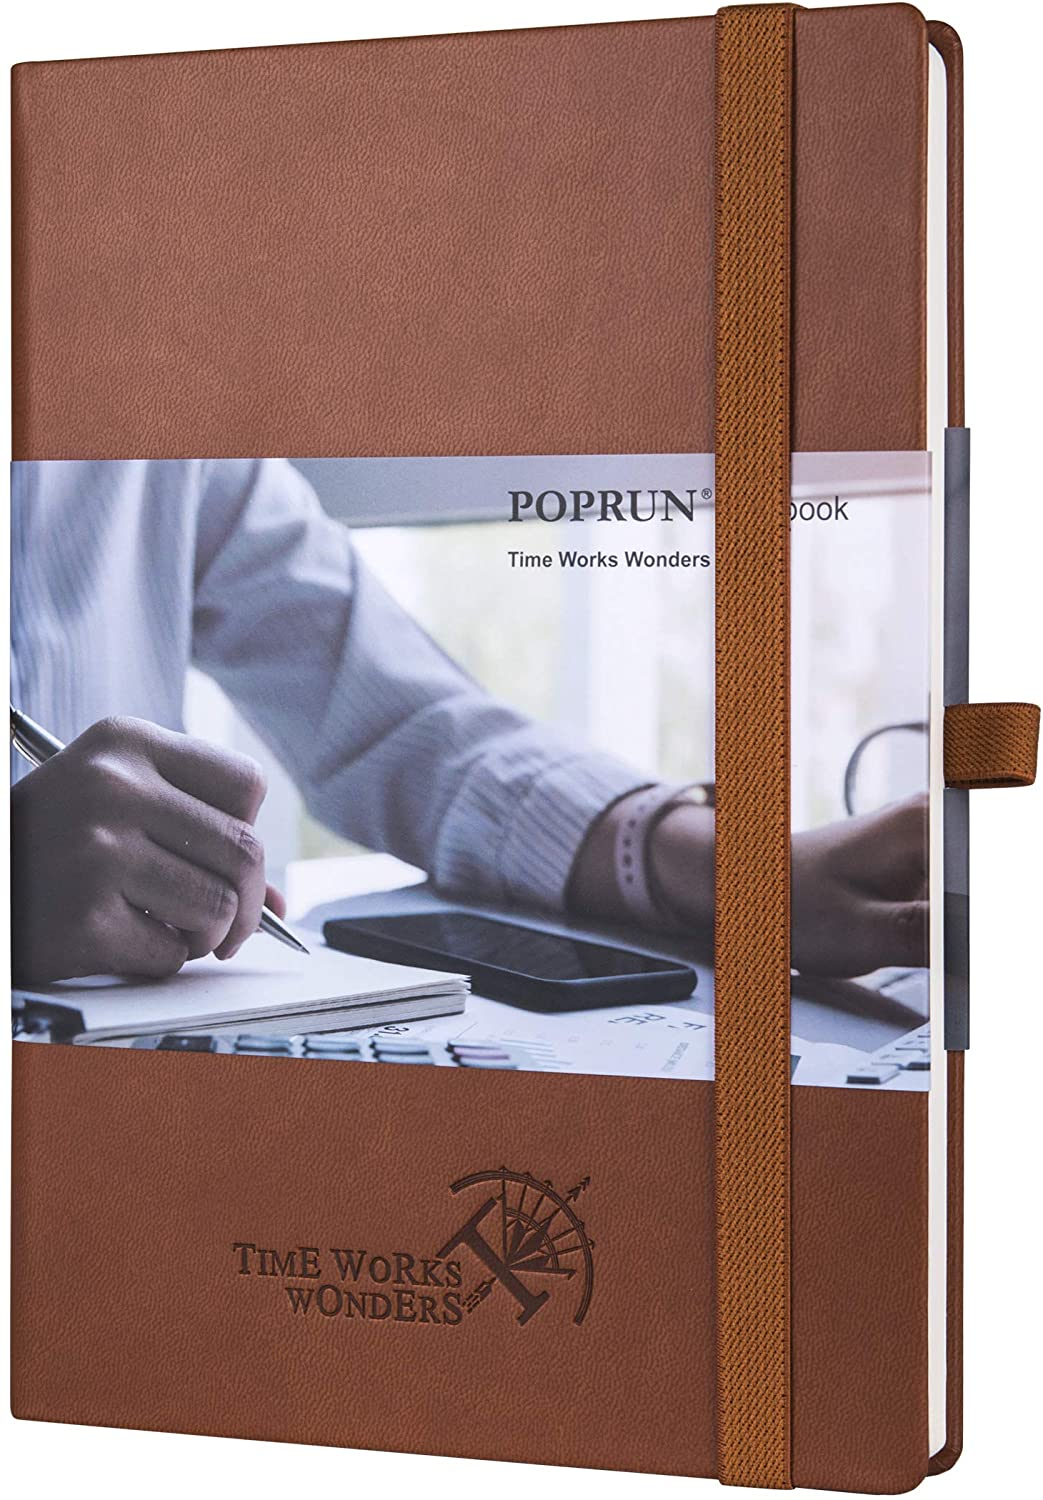 College Ruled Notebook Journal - Vegan Leather Hard Cover, Premium 120 gsm Ivory Paper, 155 Numbered Pages with Perforated Corner, 6 x 8.5 inches (Lined, Brown)